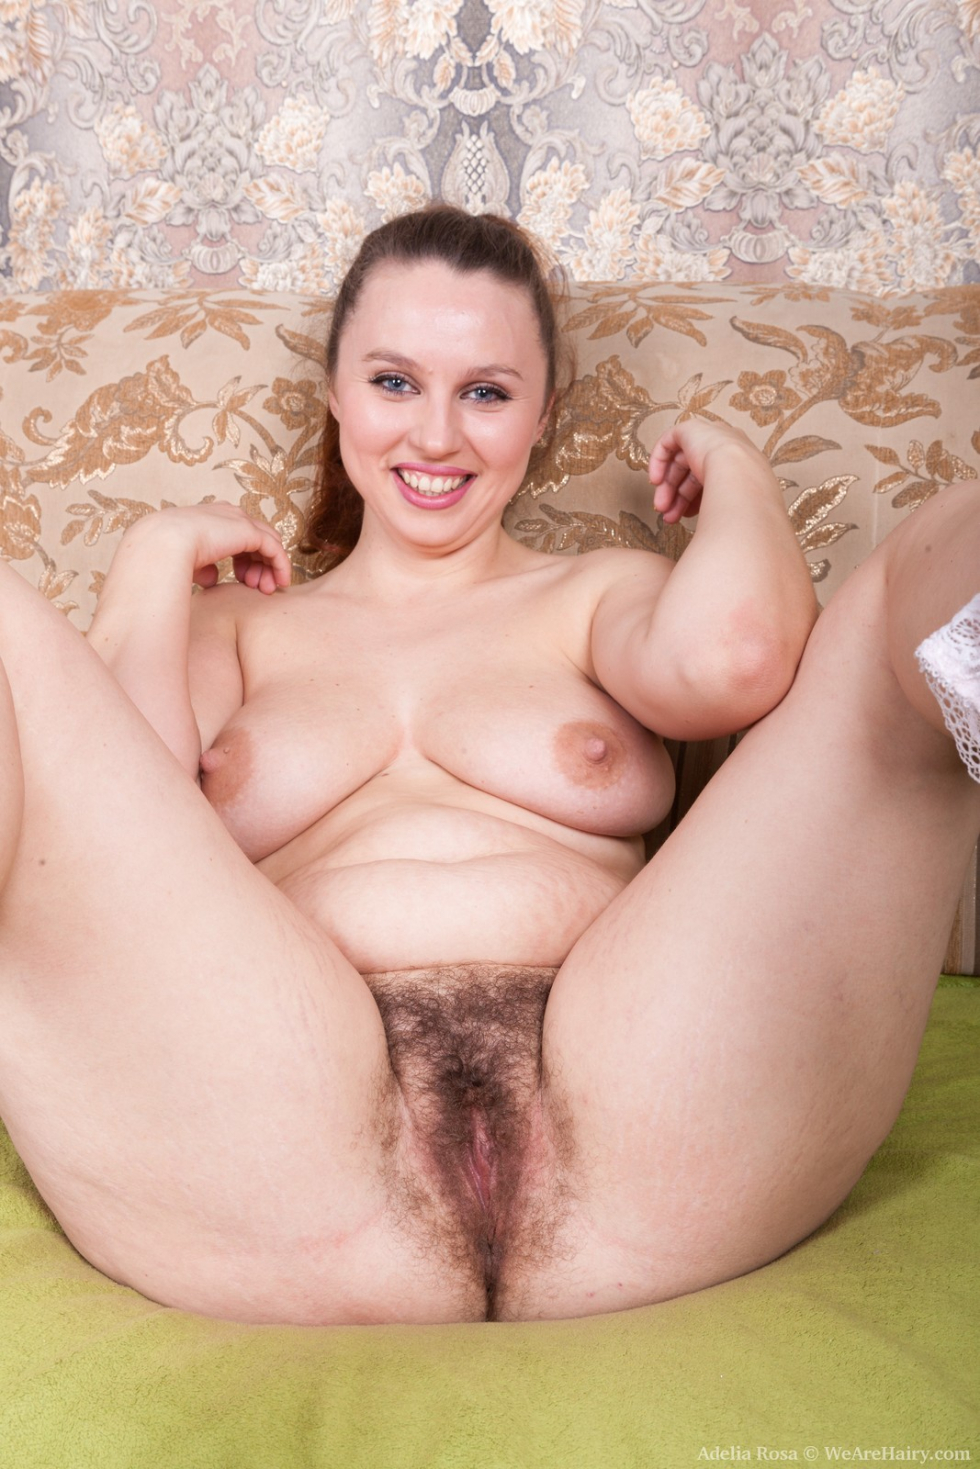 Adelia rosa strips nude on her chair and enjoys it - 3 part 2